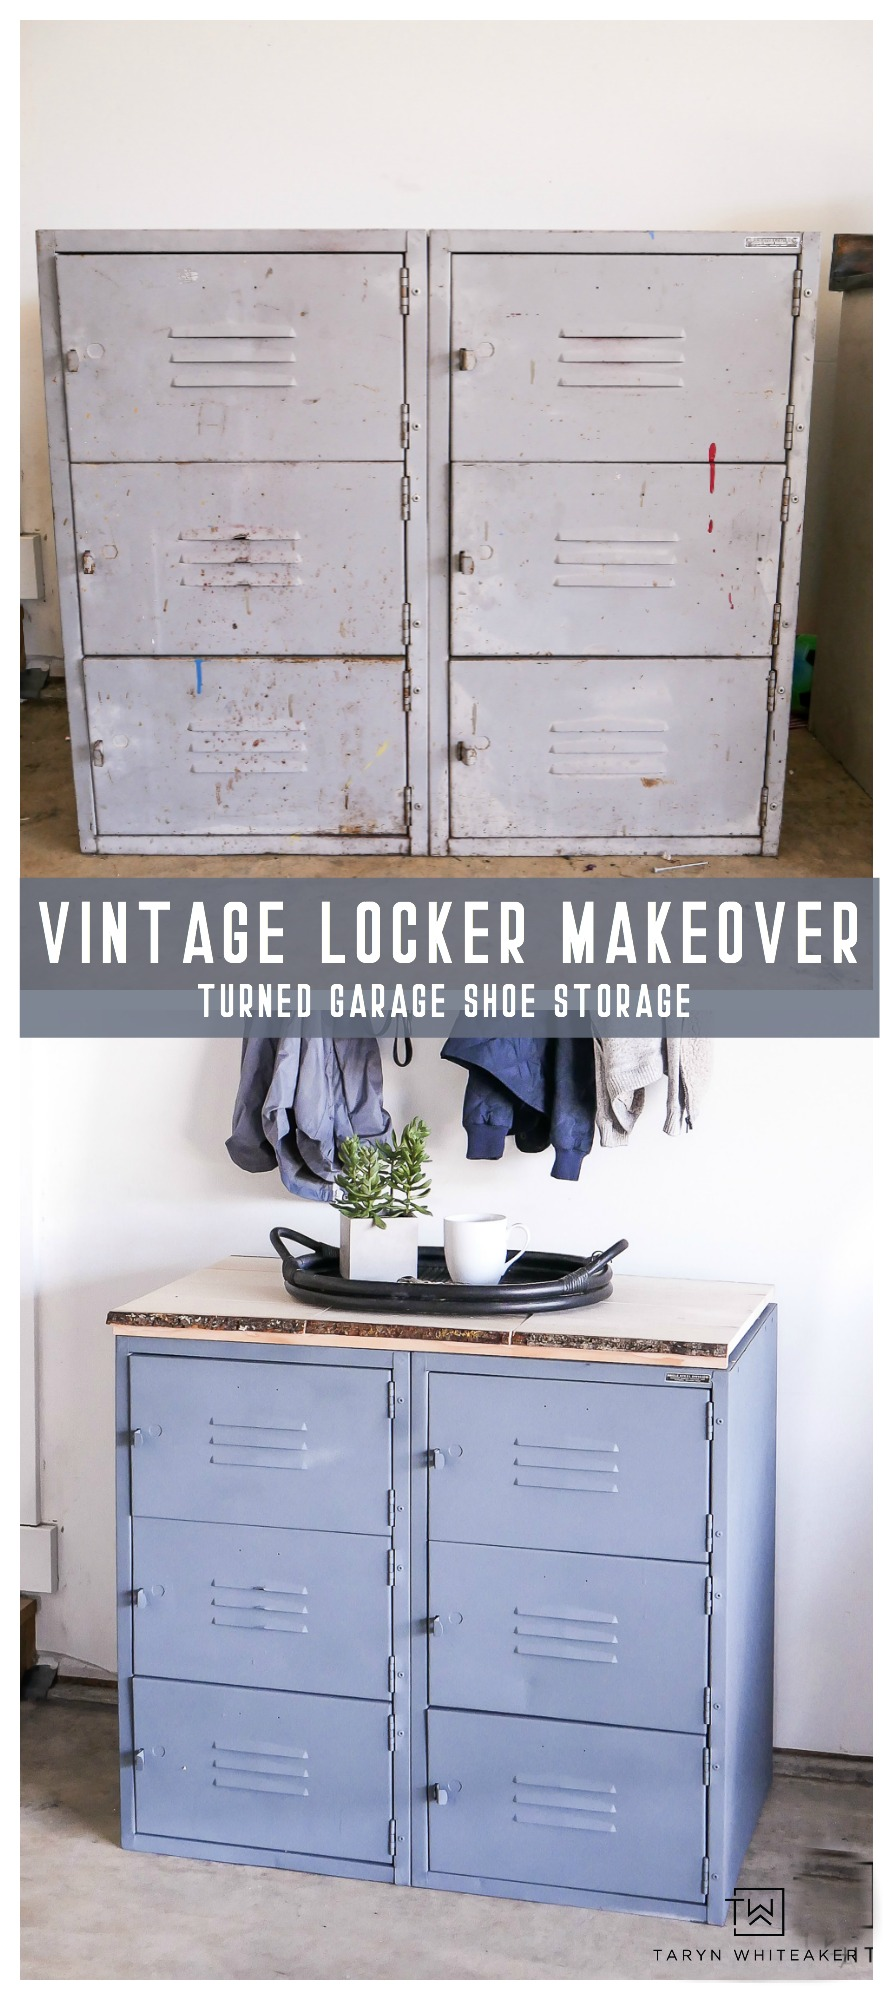 Love this vintage locker makeover project, perfect for more garage organization. Click for great tips on painting metal and creating your own DIY Wood top!